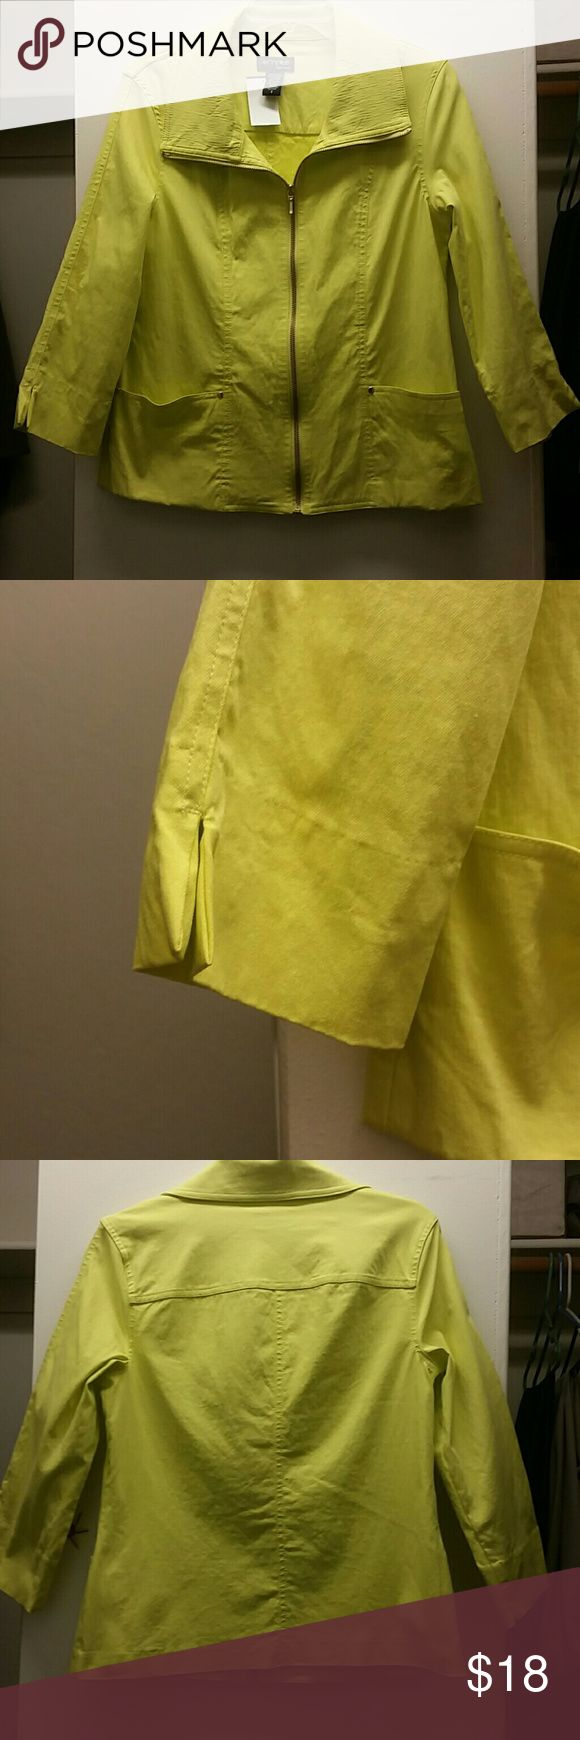 Yellow jackets in ground best way to kill - Attyre Yellow Jacket Yellow Jacket Stretchy Sleeves Don T Come All The Way